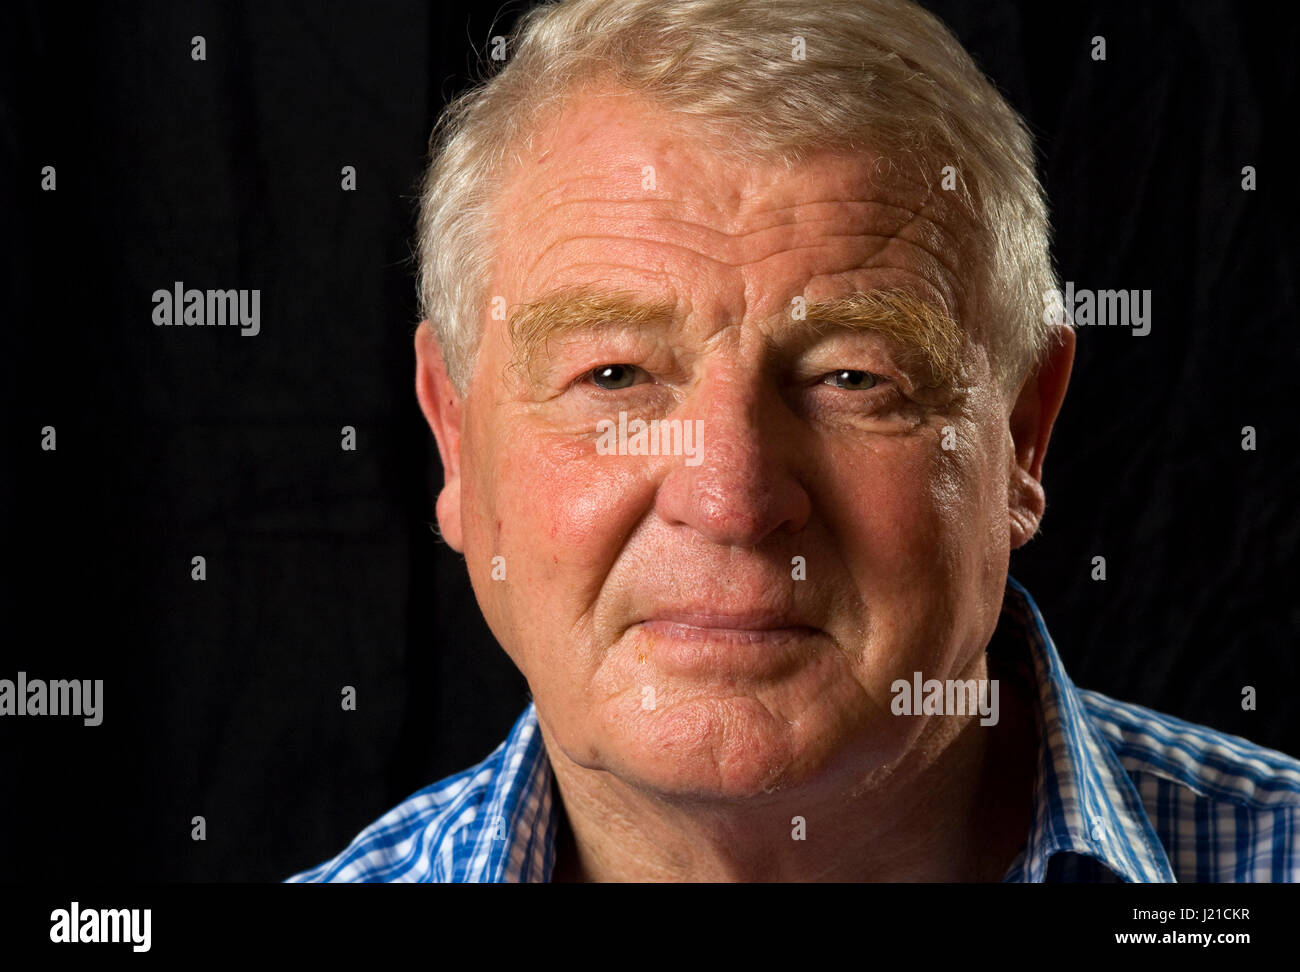 Sir Paddy Ashdown photographed at his home in Somerset, UK Stock Photo